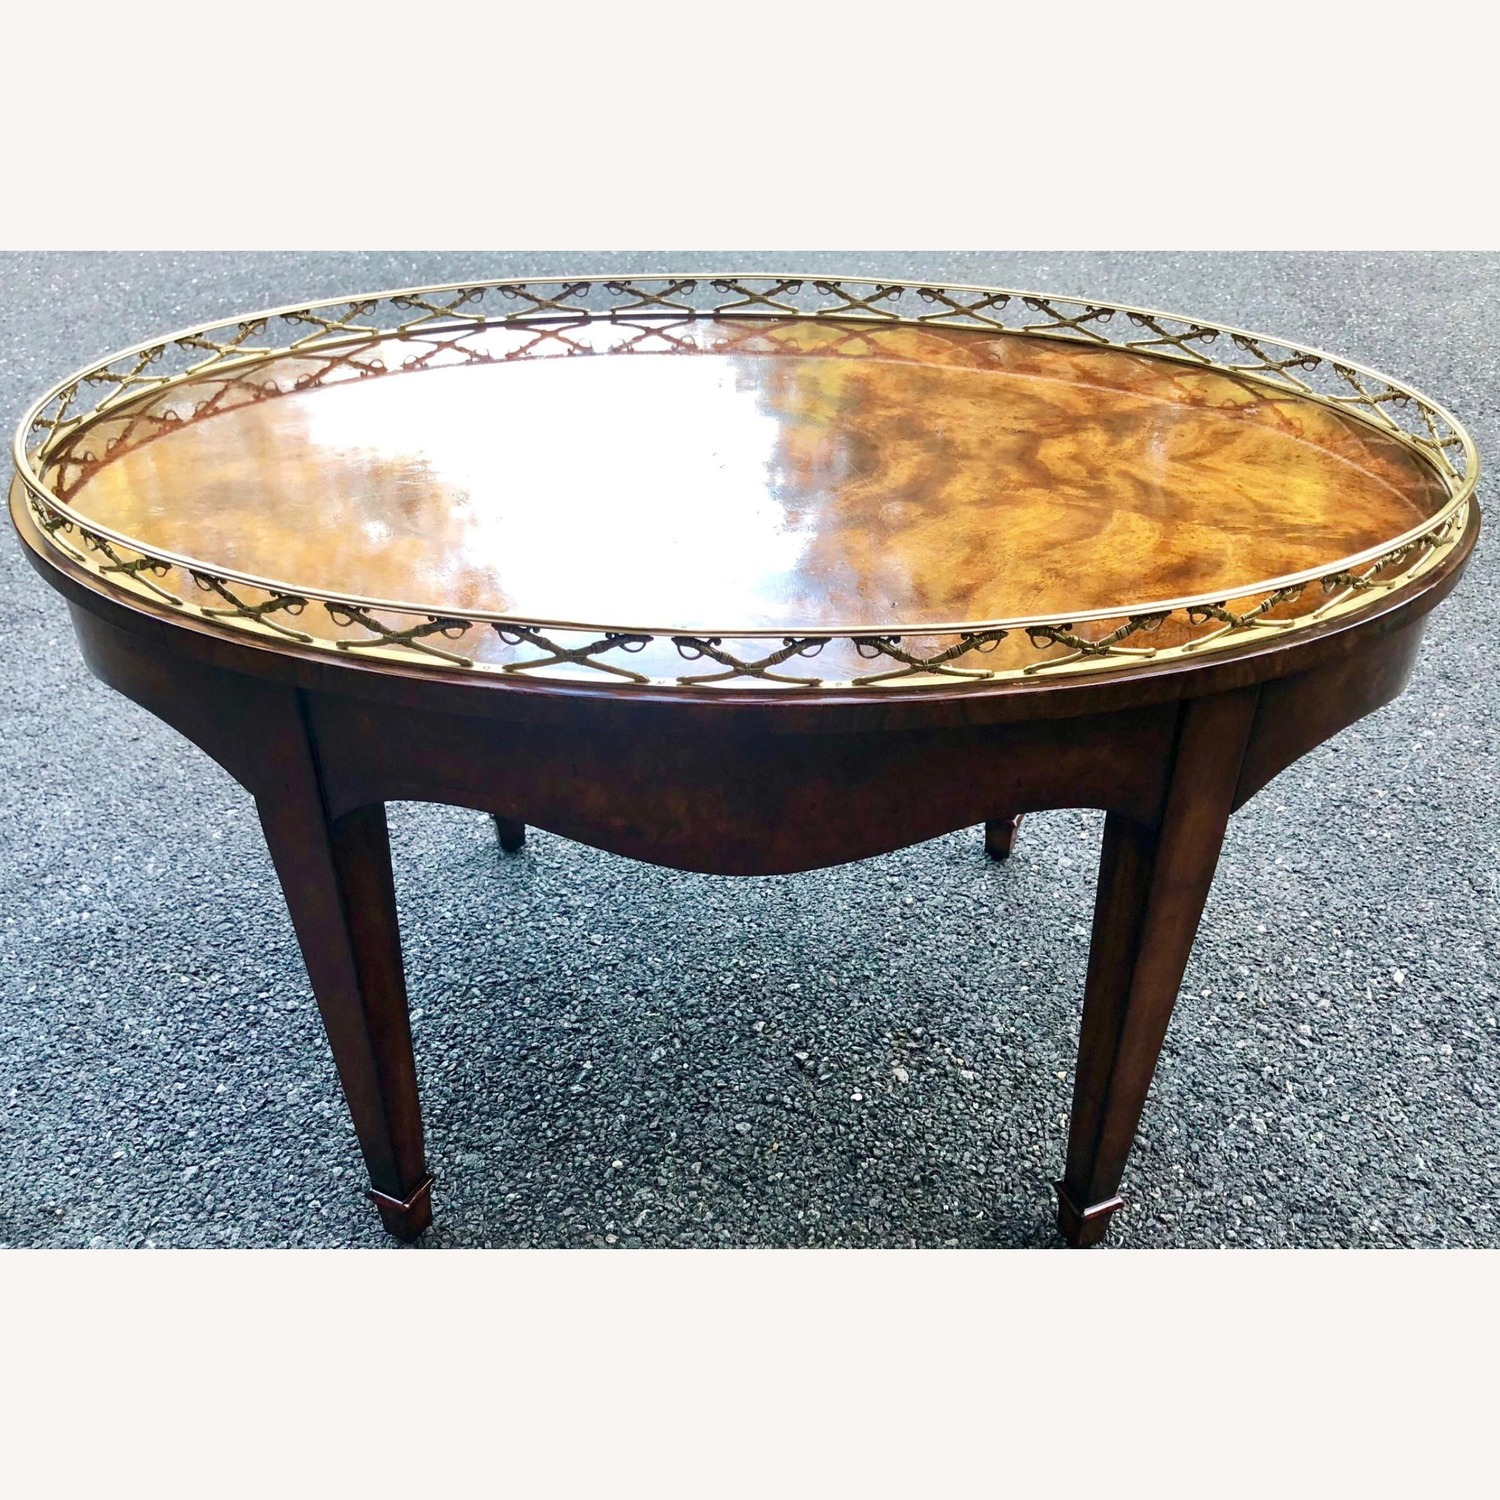 Theodore Alexander Admiral's Table Cocktail Table - image-2